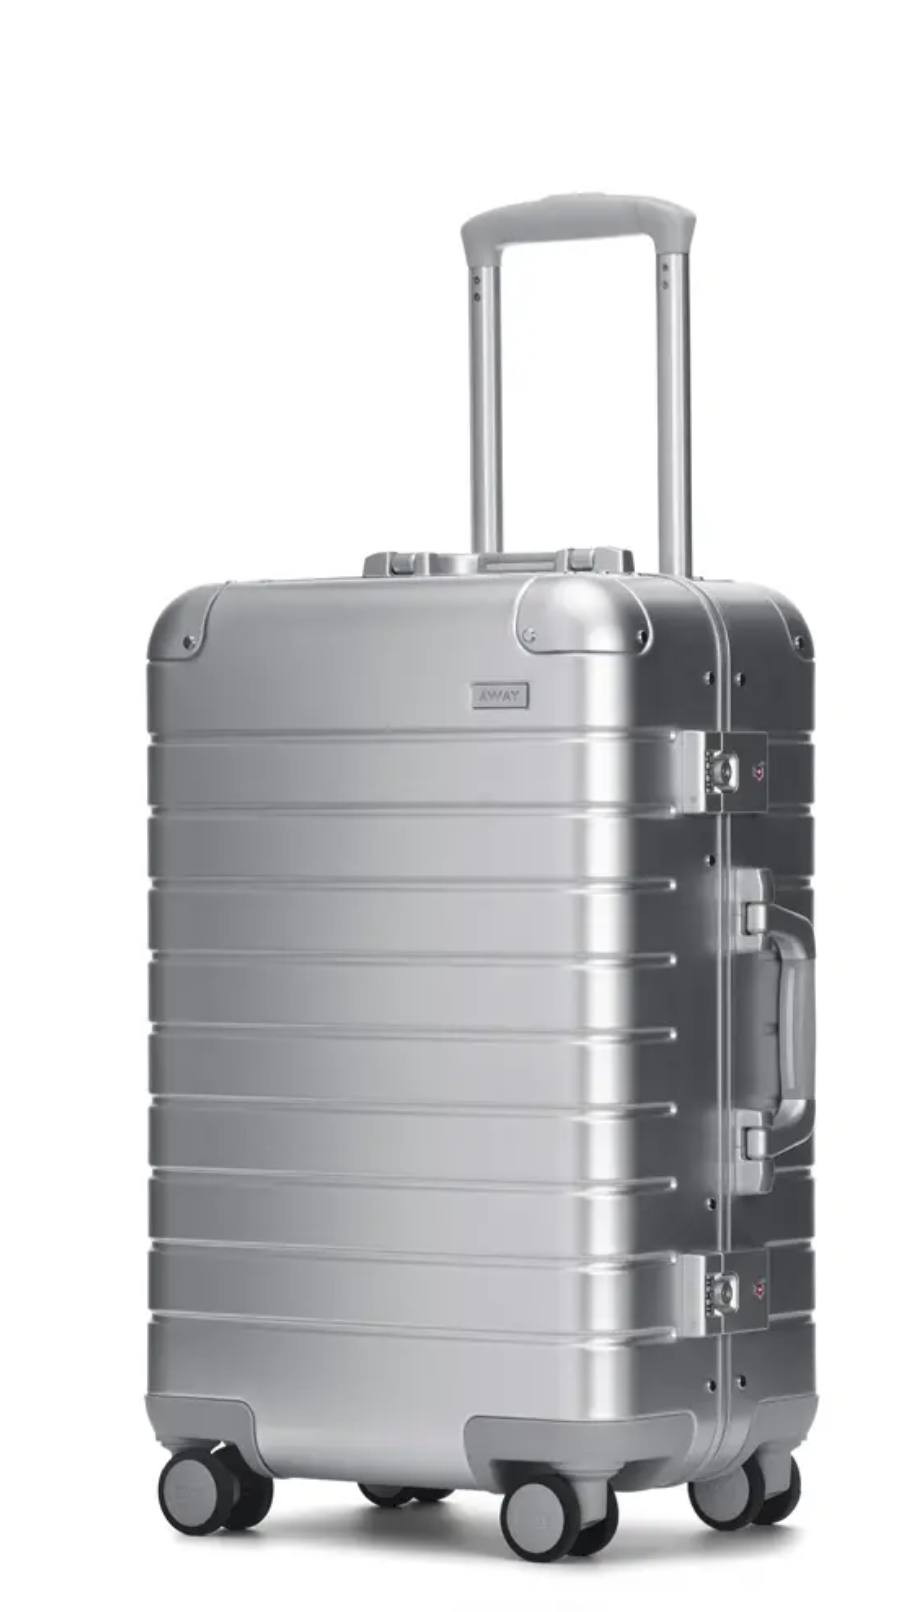 Carry-on luggage Away Suitcase